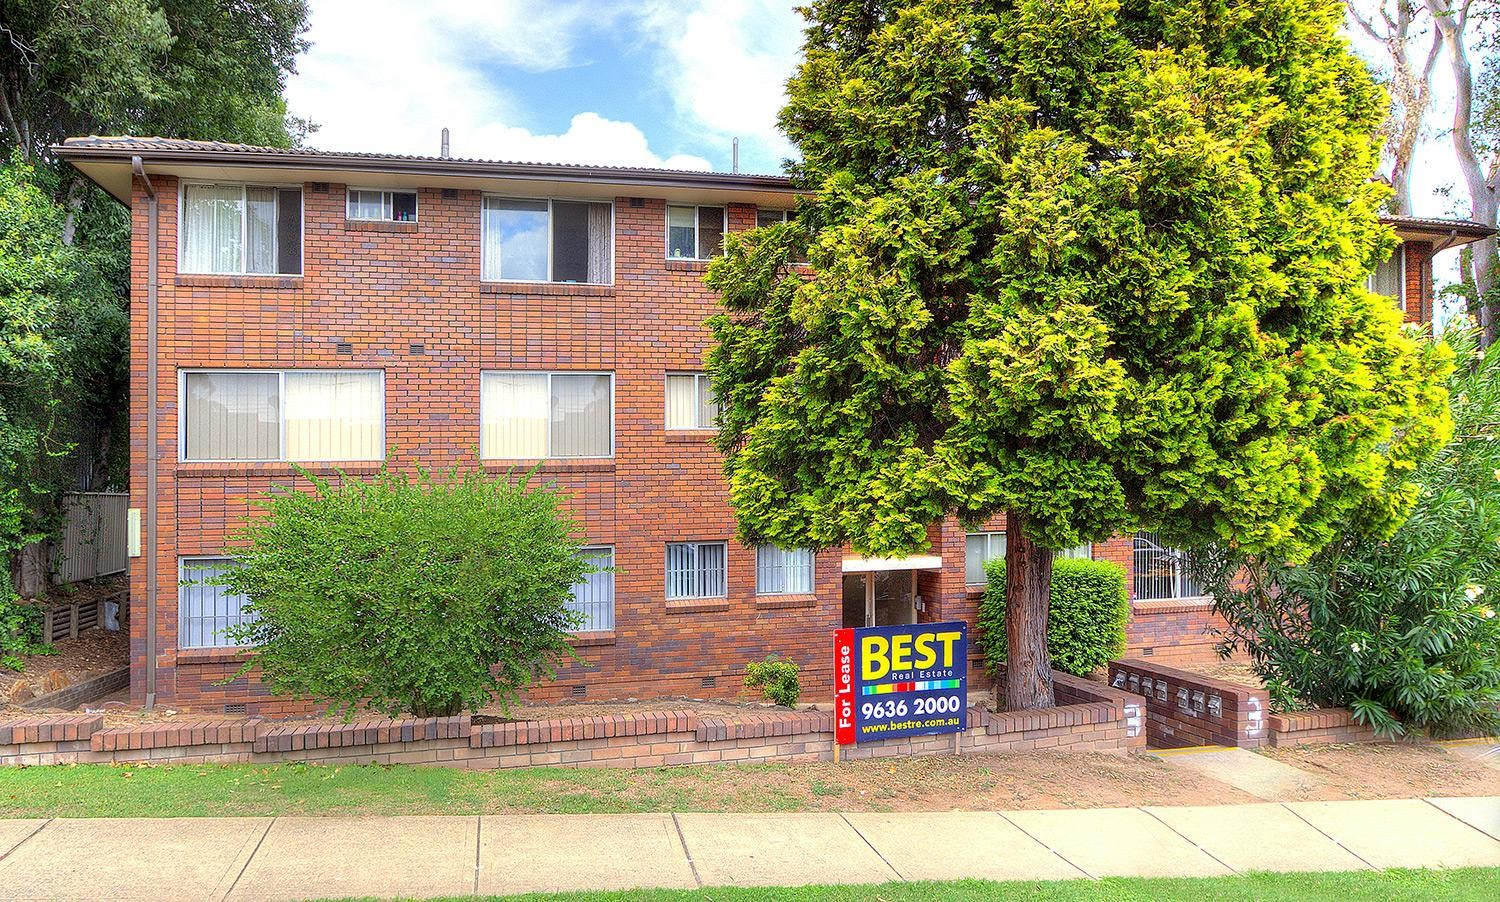 Price Slashed! 3 Bedroom Unit! Cheapest in Area!